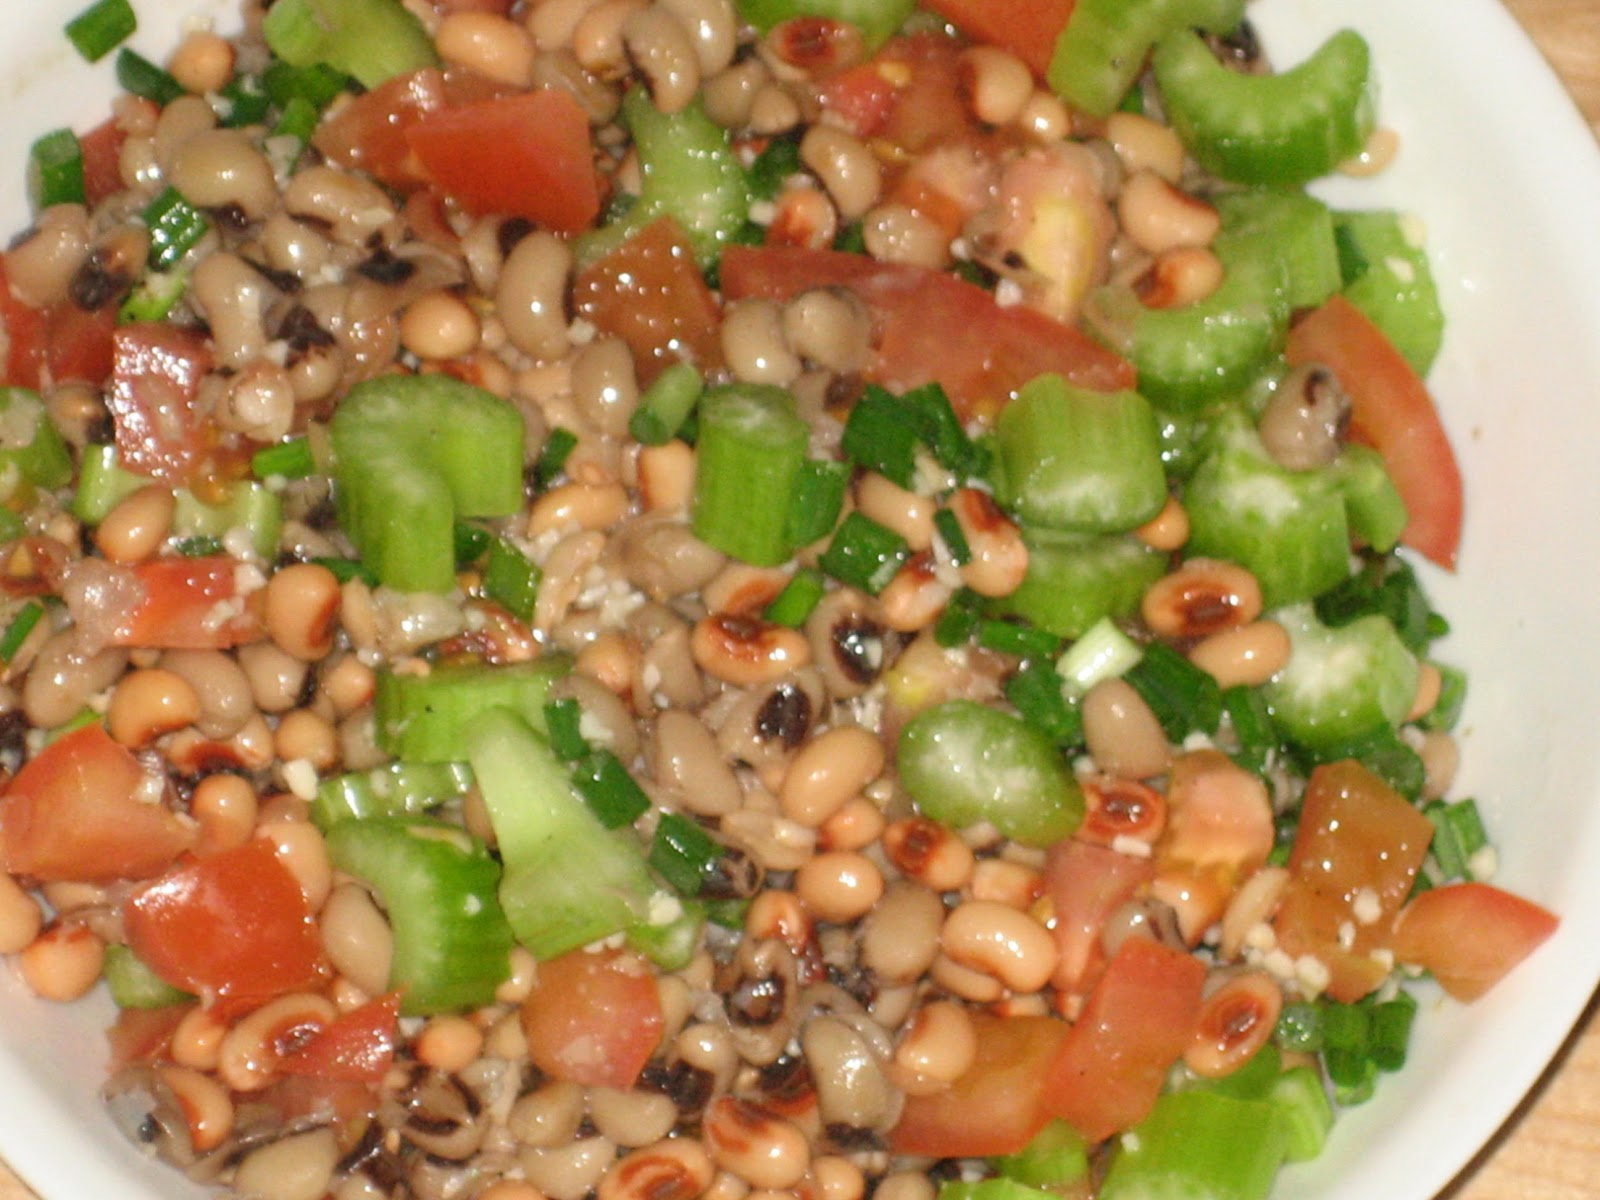 ... greek salad with orzo and black eyed peas recipe black eyed pea salad